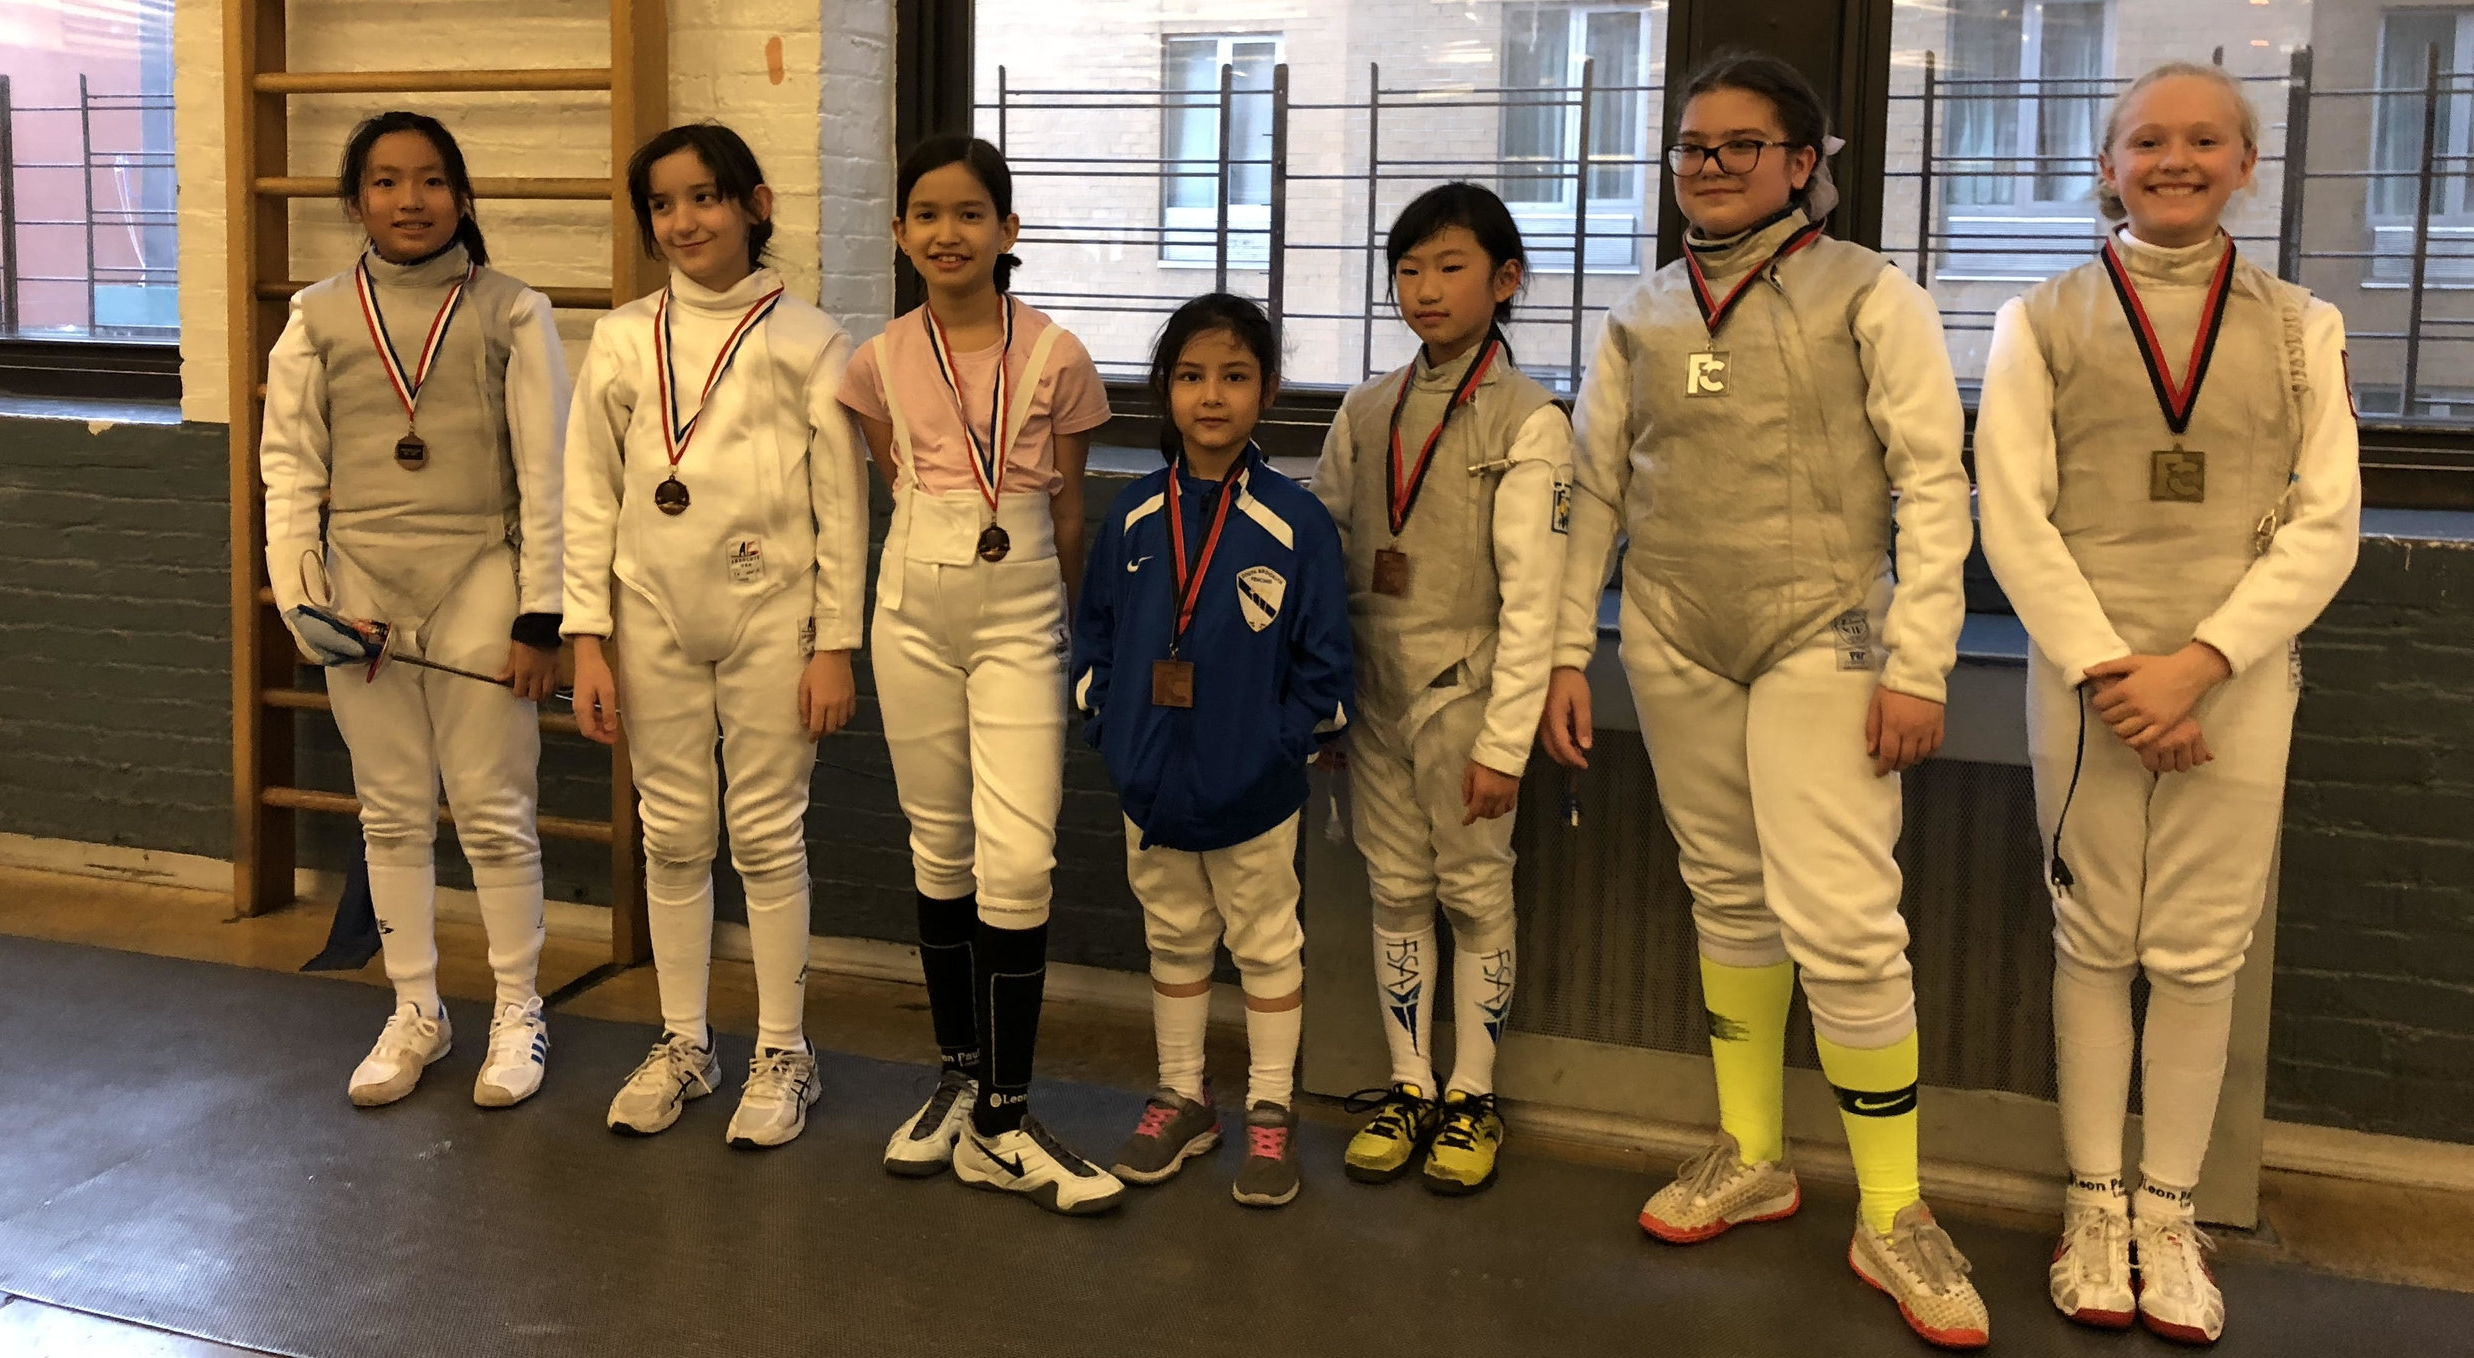 Fencers Club Youth Tournament  Emily Cascone 3rd place Y10 women's December 9th 2018